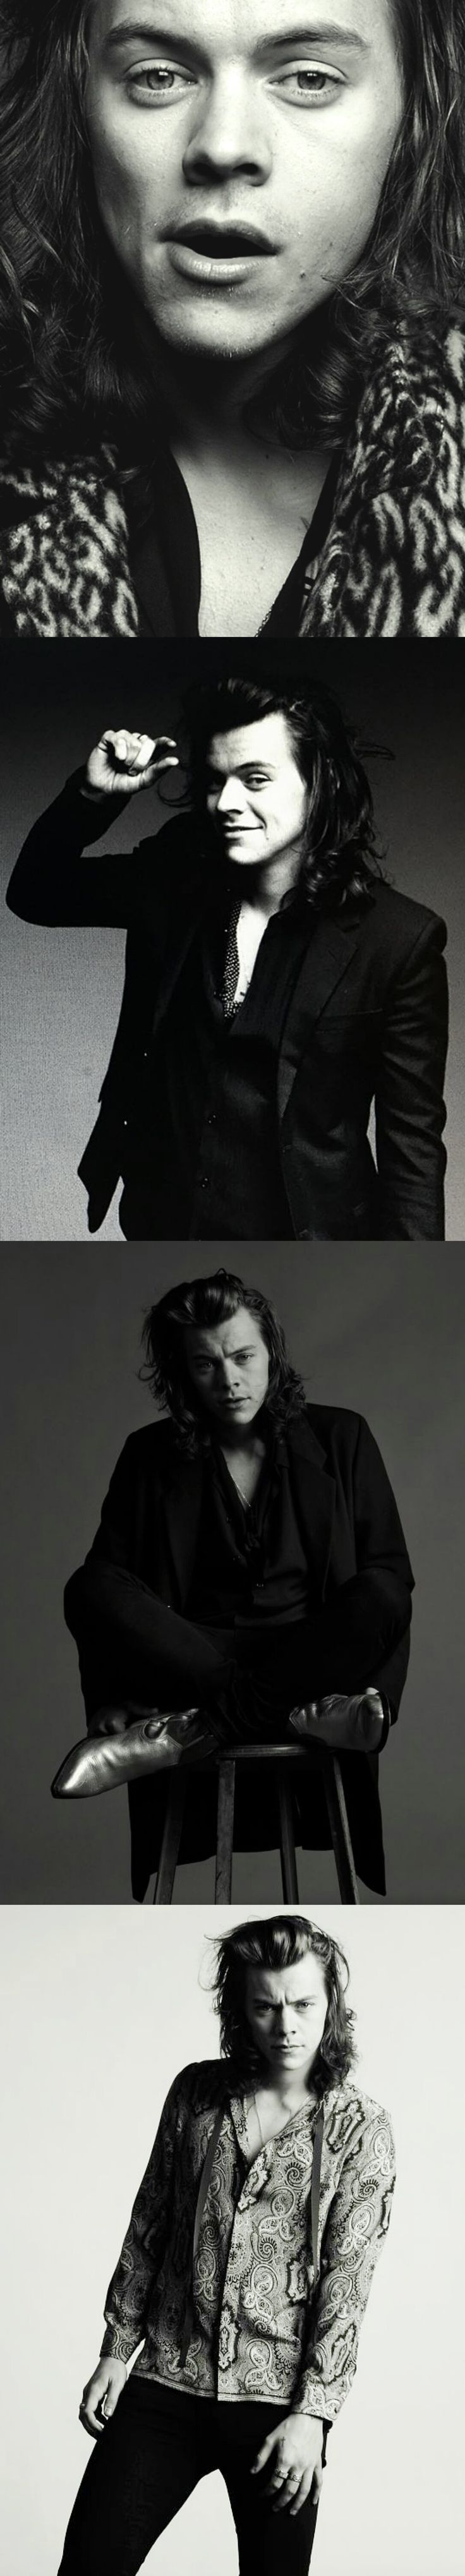 Harry's Photoshoot outtakes © Sven Jacobsen